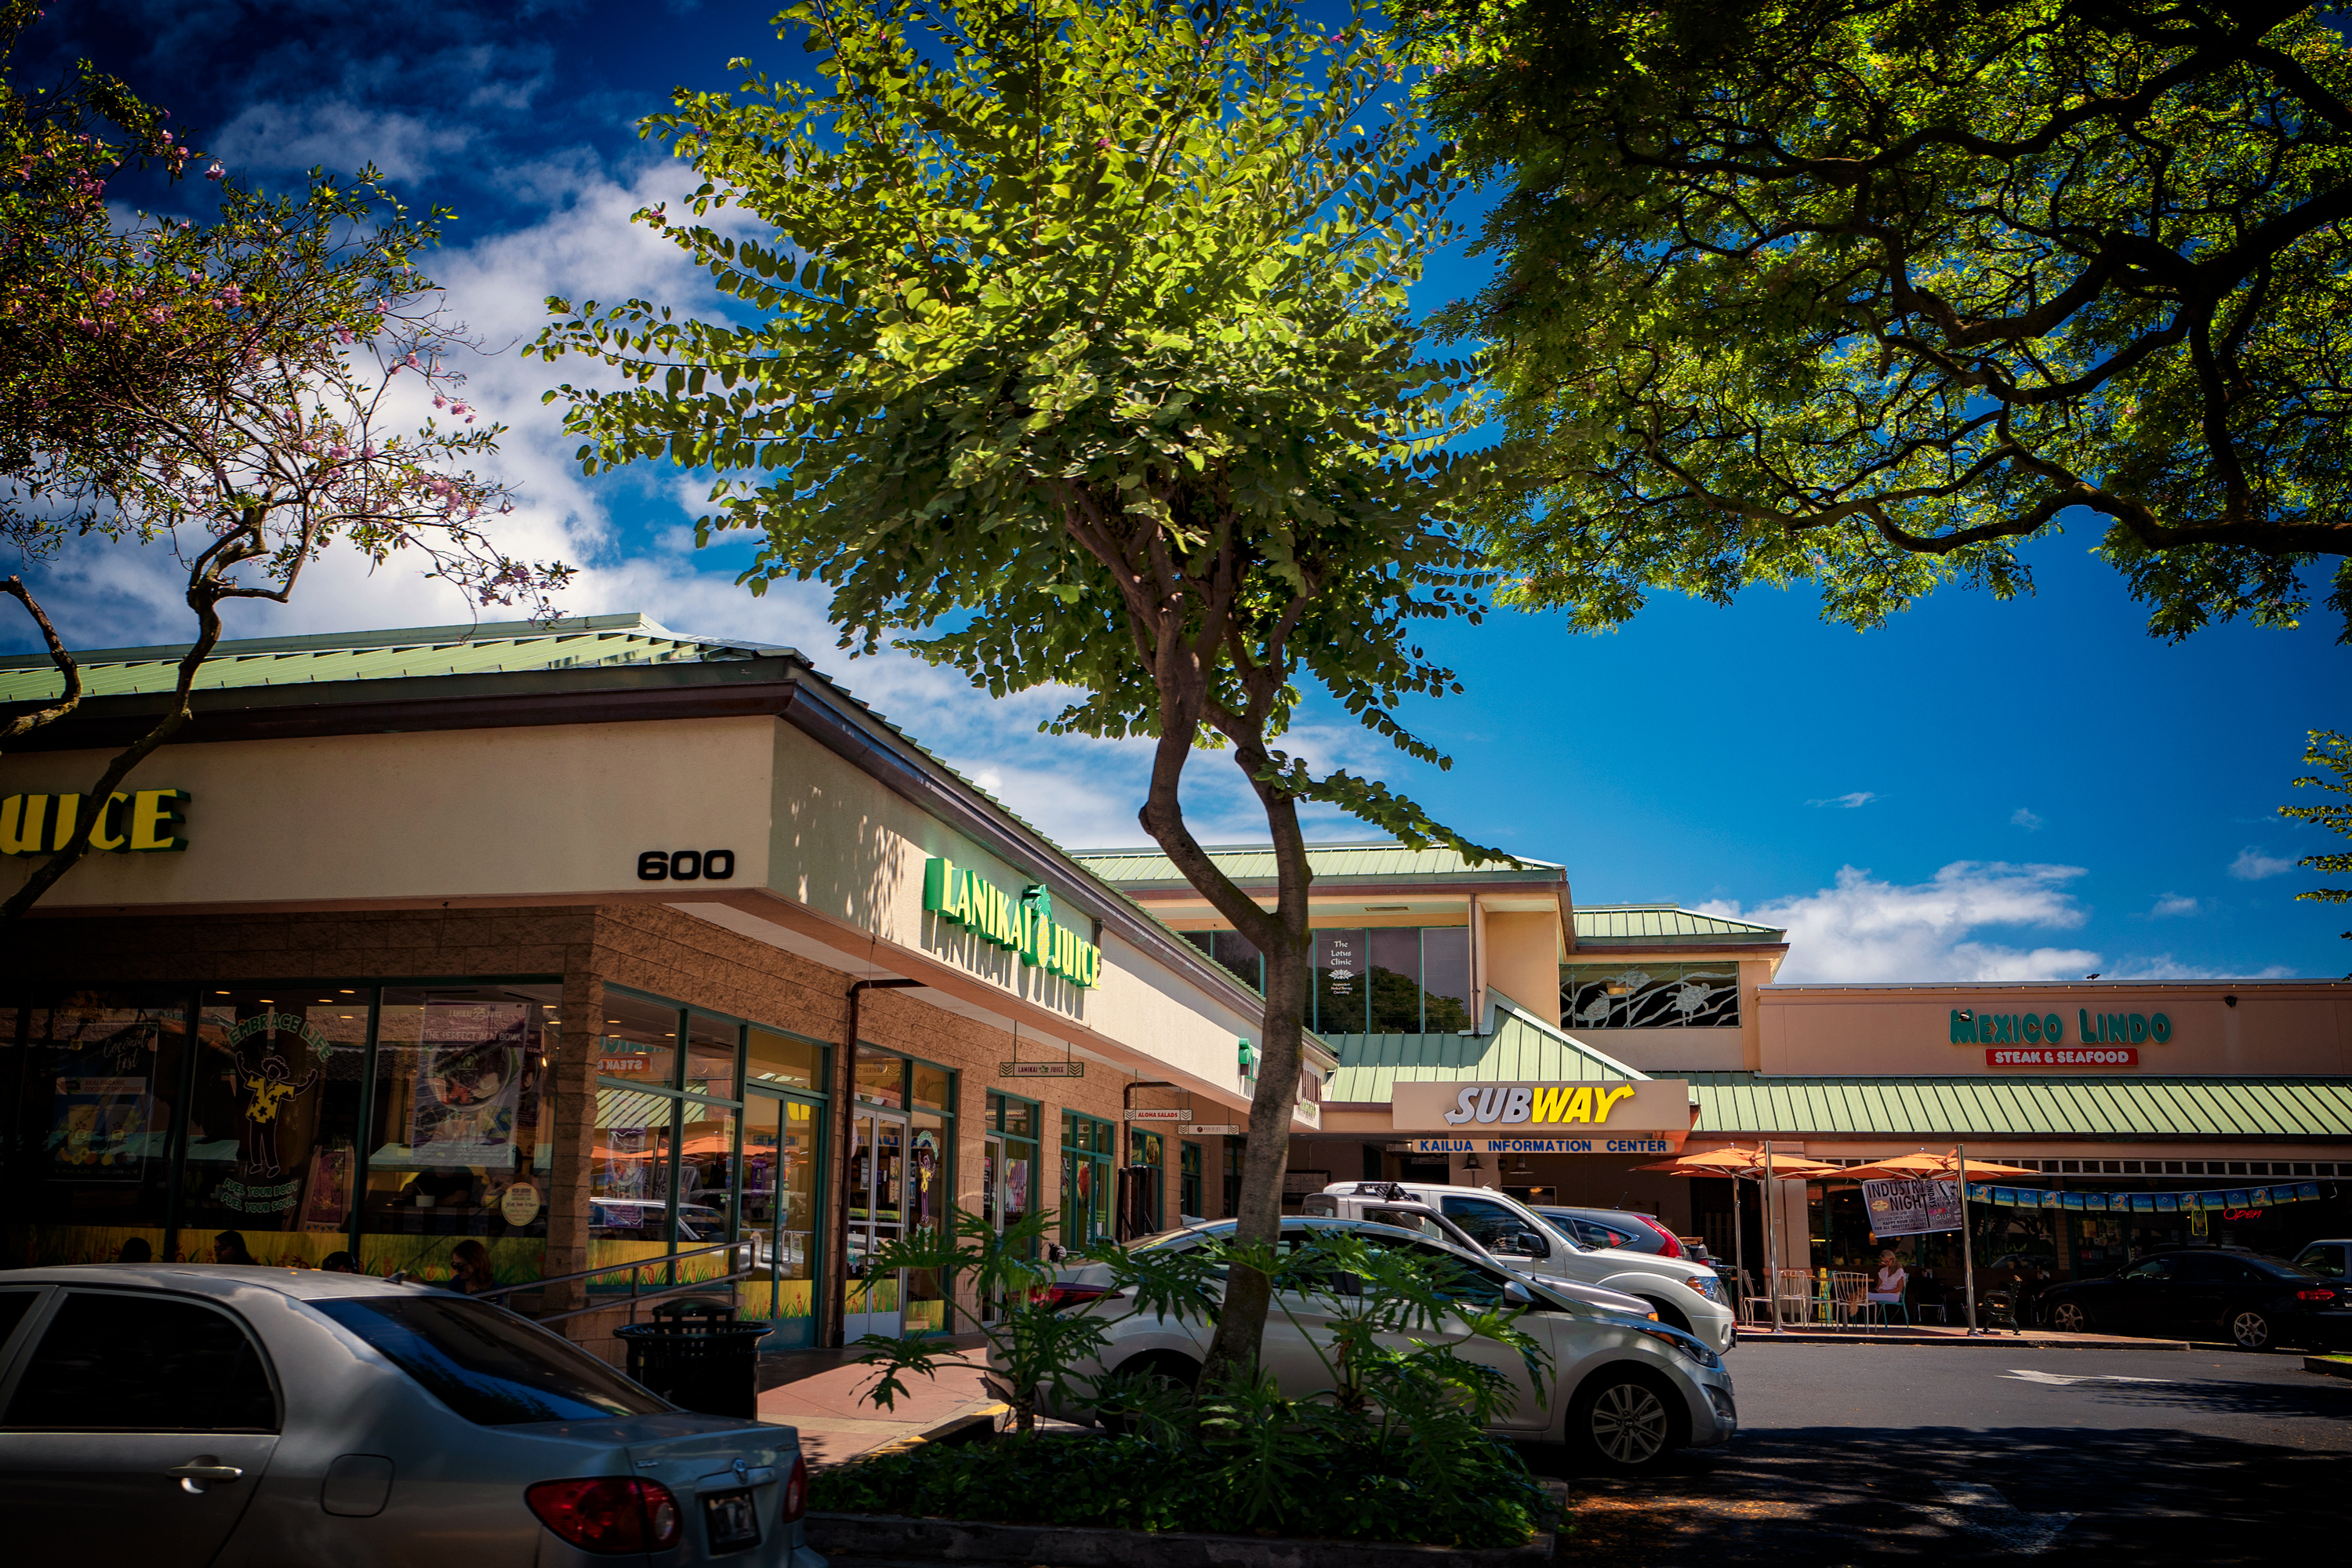 Kailua Shopping Center